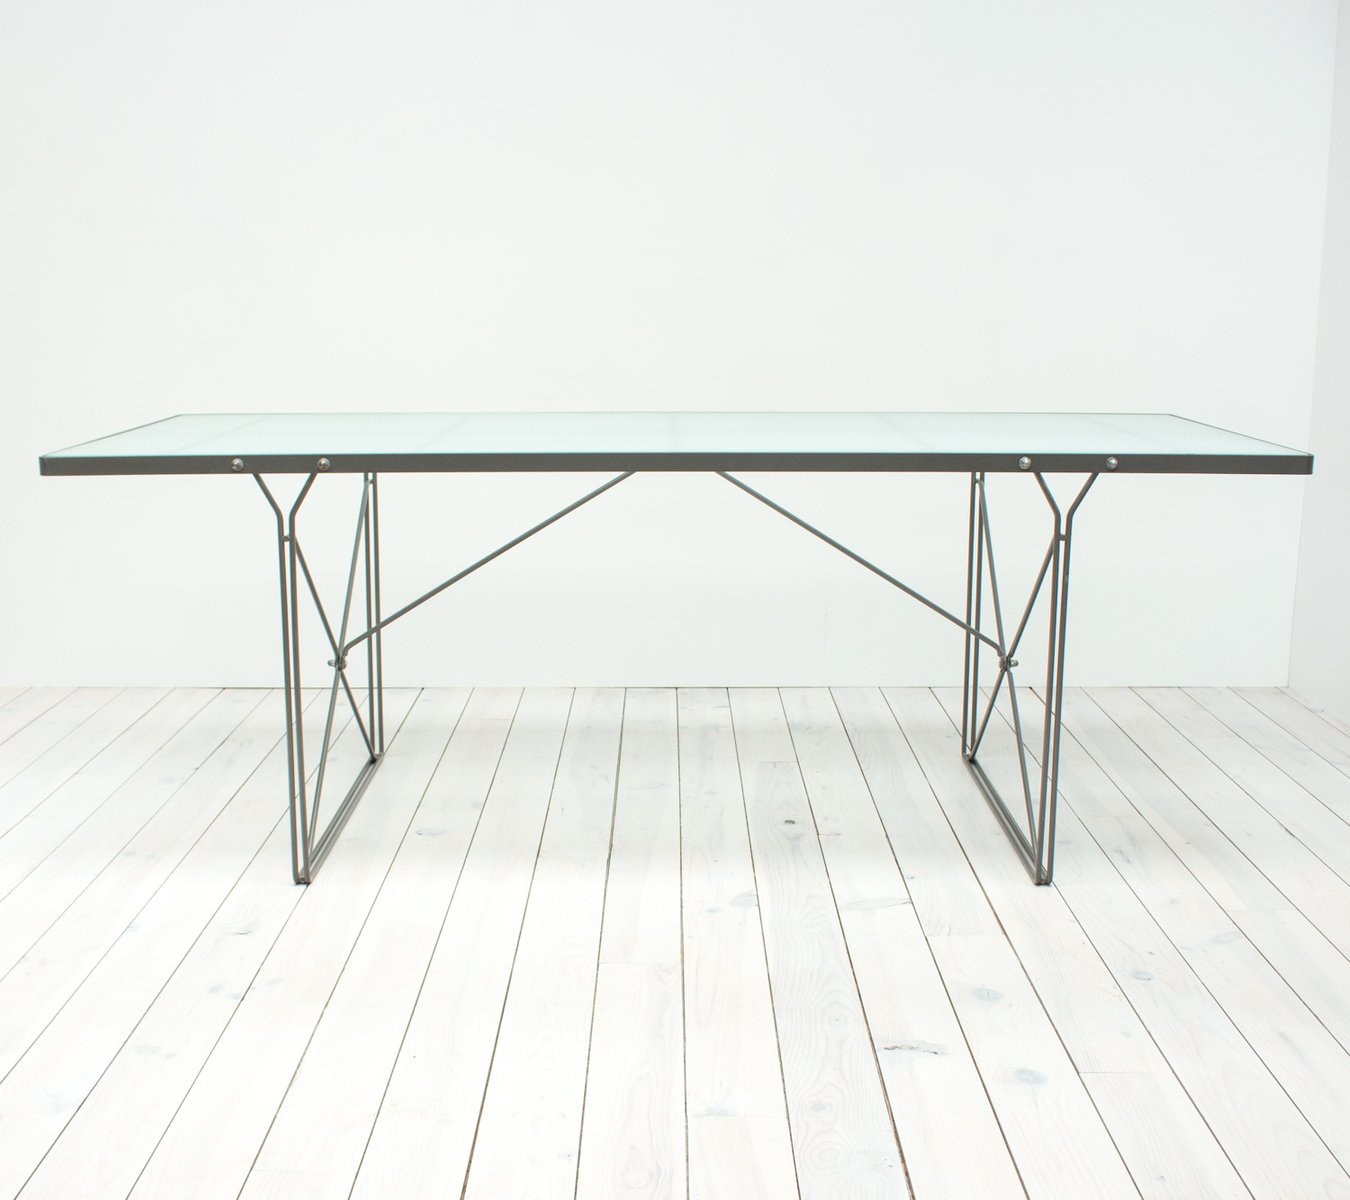 Moment Glass Dining Table By Niels Gammelgaard For Ikea 1987